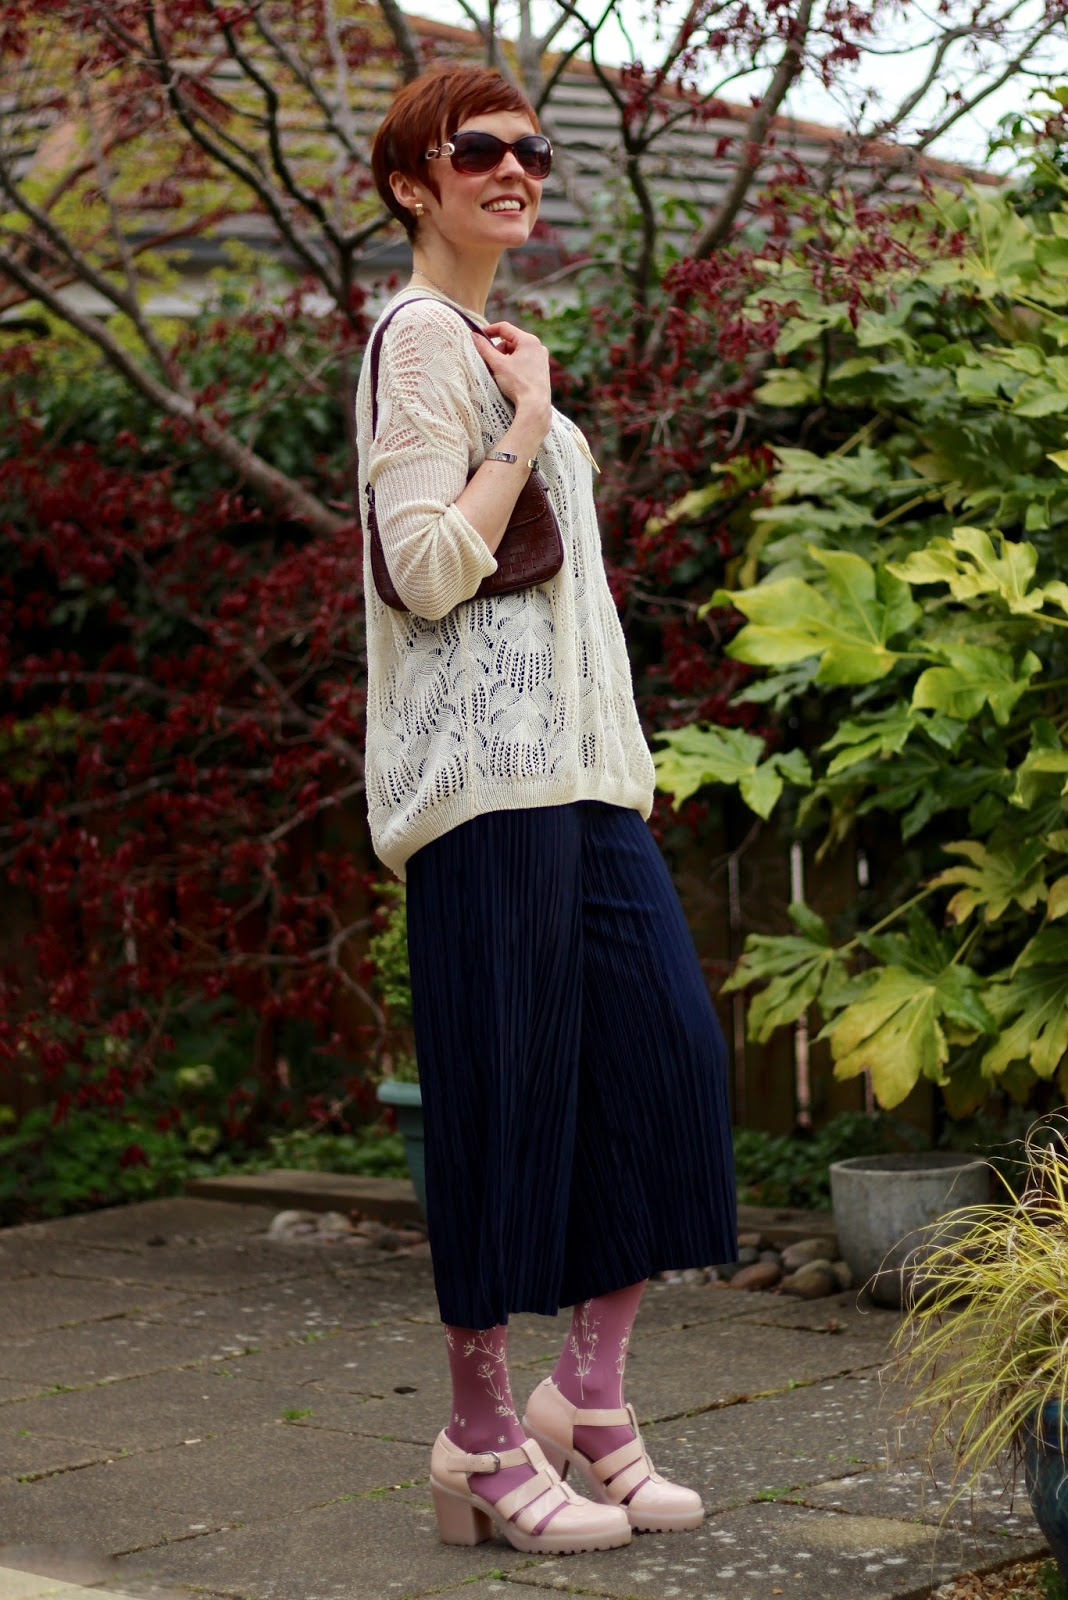 Pleated Culottes, Zohara Patterned Tights, vagabond sandals and a Slouchy Knit.